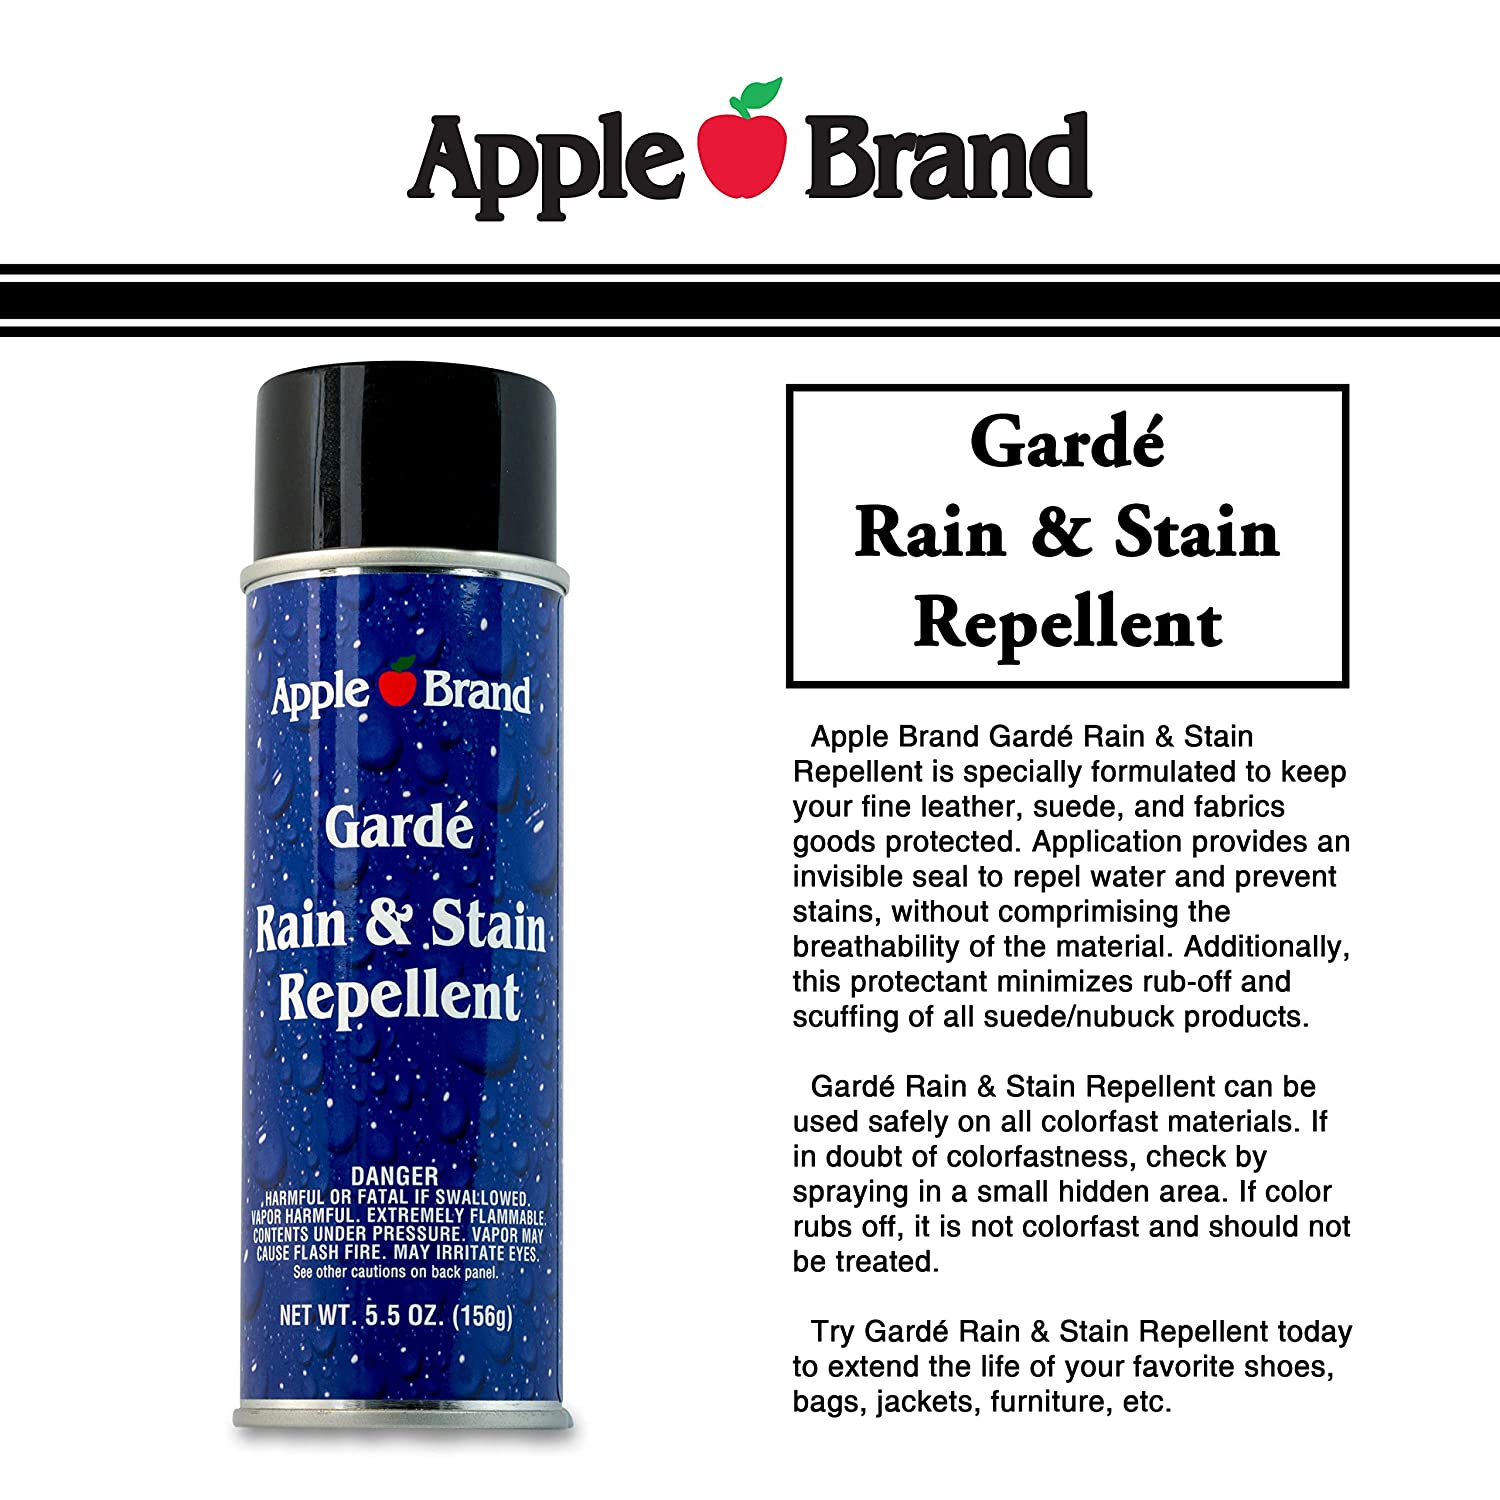 c5e457acd0 Amazon.com: Apple Brand Garde Rain & Stain Water Repellent - Protector  Spray For Handbags, Purses, Shoes, Boots, Accessories, Furniture - Won't  Alter Color ...